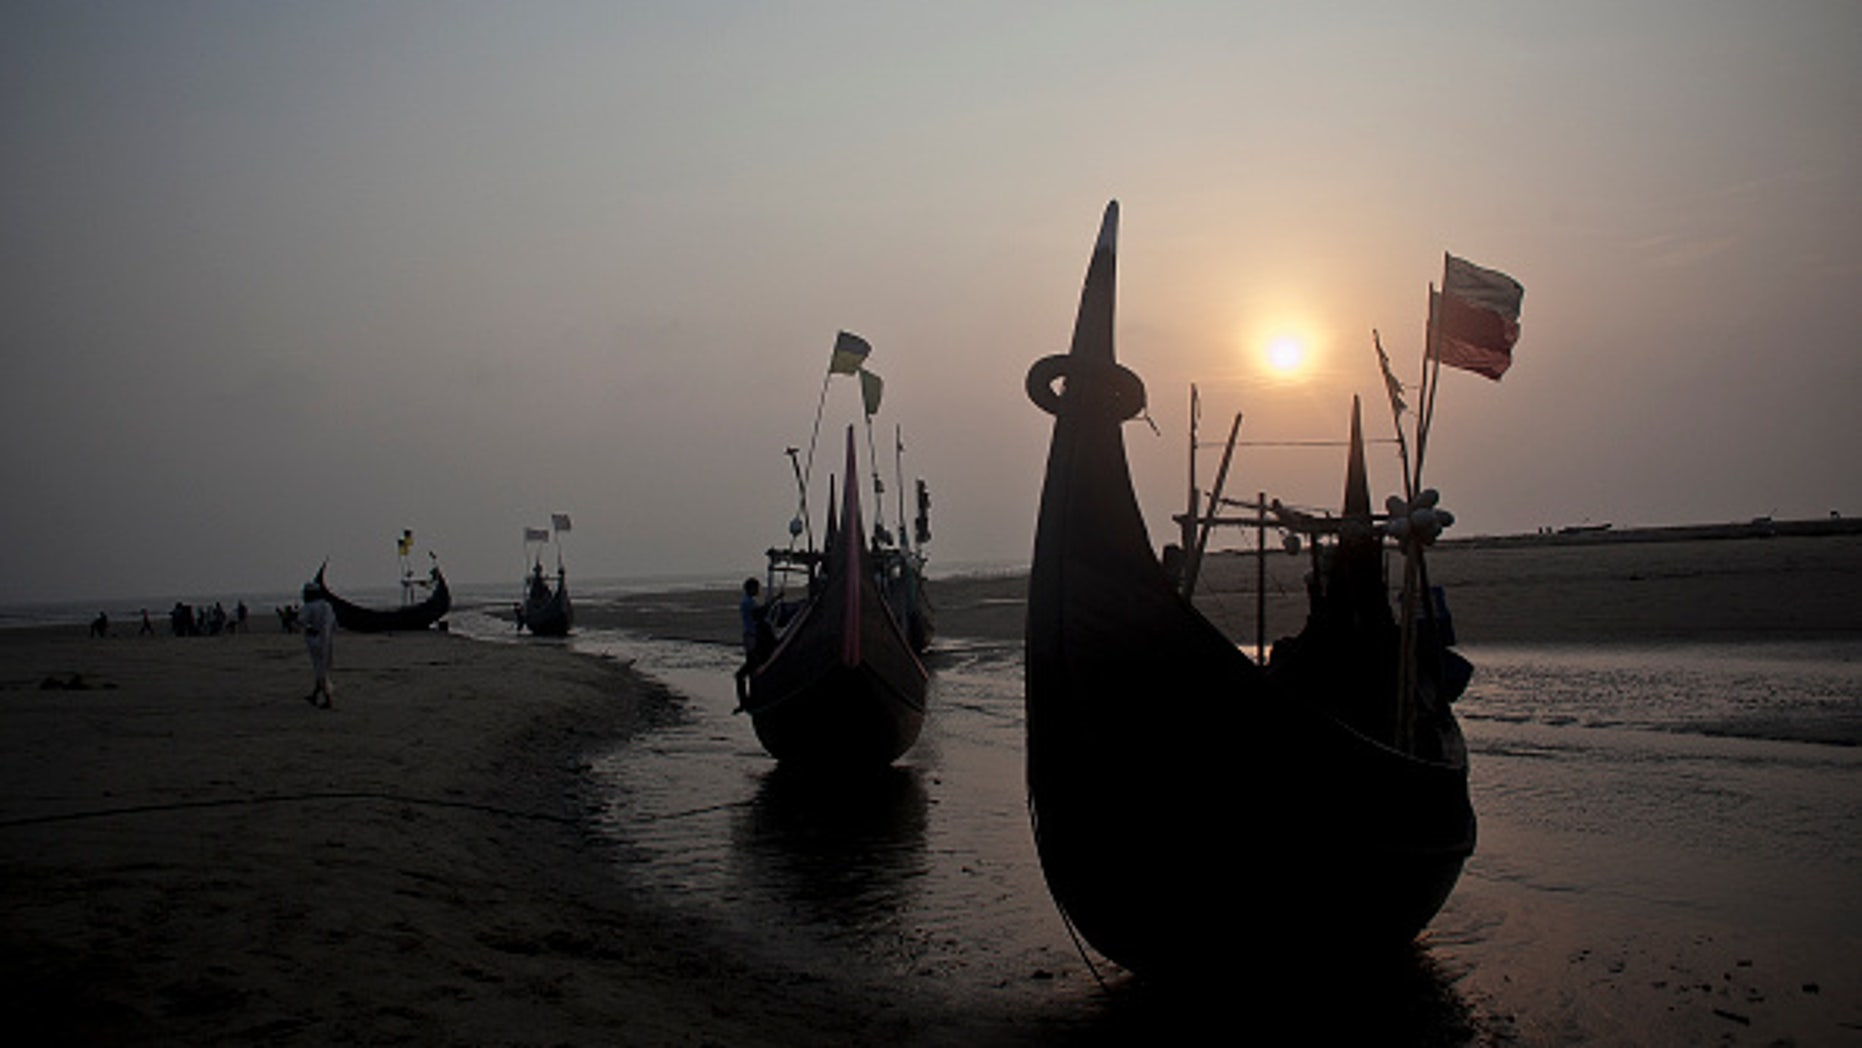 SHAMLAPUR, BANGLADESH - JULY 4:  Fishing boats, like the kind that traffickers use, are seen on the beach July 4, 2015 in Shamlapur, Bangladesh. In the past months thousands of Rohingya have landed on the shores of Indonesia, Malaysia and Thailand, many of them by way of Bangladesh. The Rohingya pay up to $2,000 to traffickers, and they sail out from Bangladesh's southern coastline on fishing boats to meet larger ships in the deep sea that will take them to Malaysia. UNHCR estimates that there are more than 300,000 Rohingya living in Bangladesh. (Photo by Shazia Rahman/Getty Images)